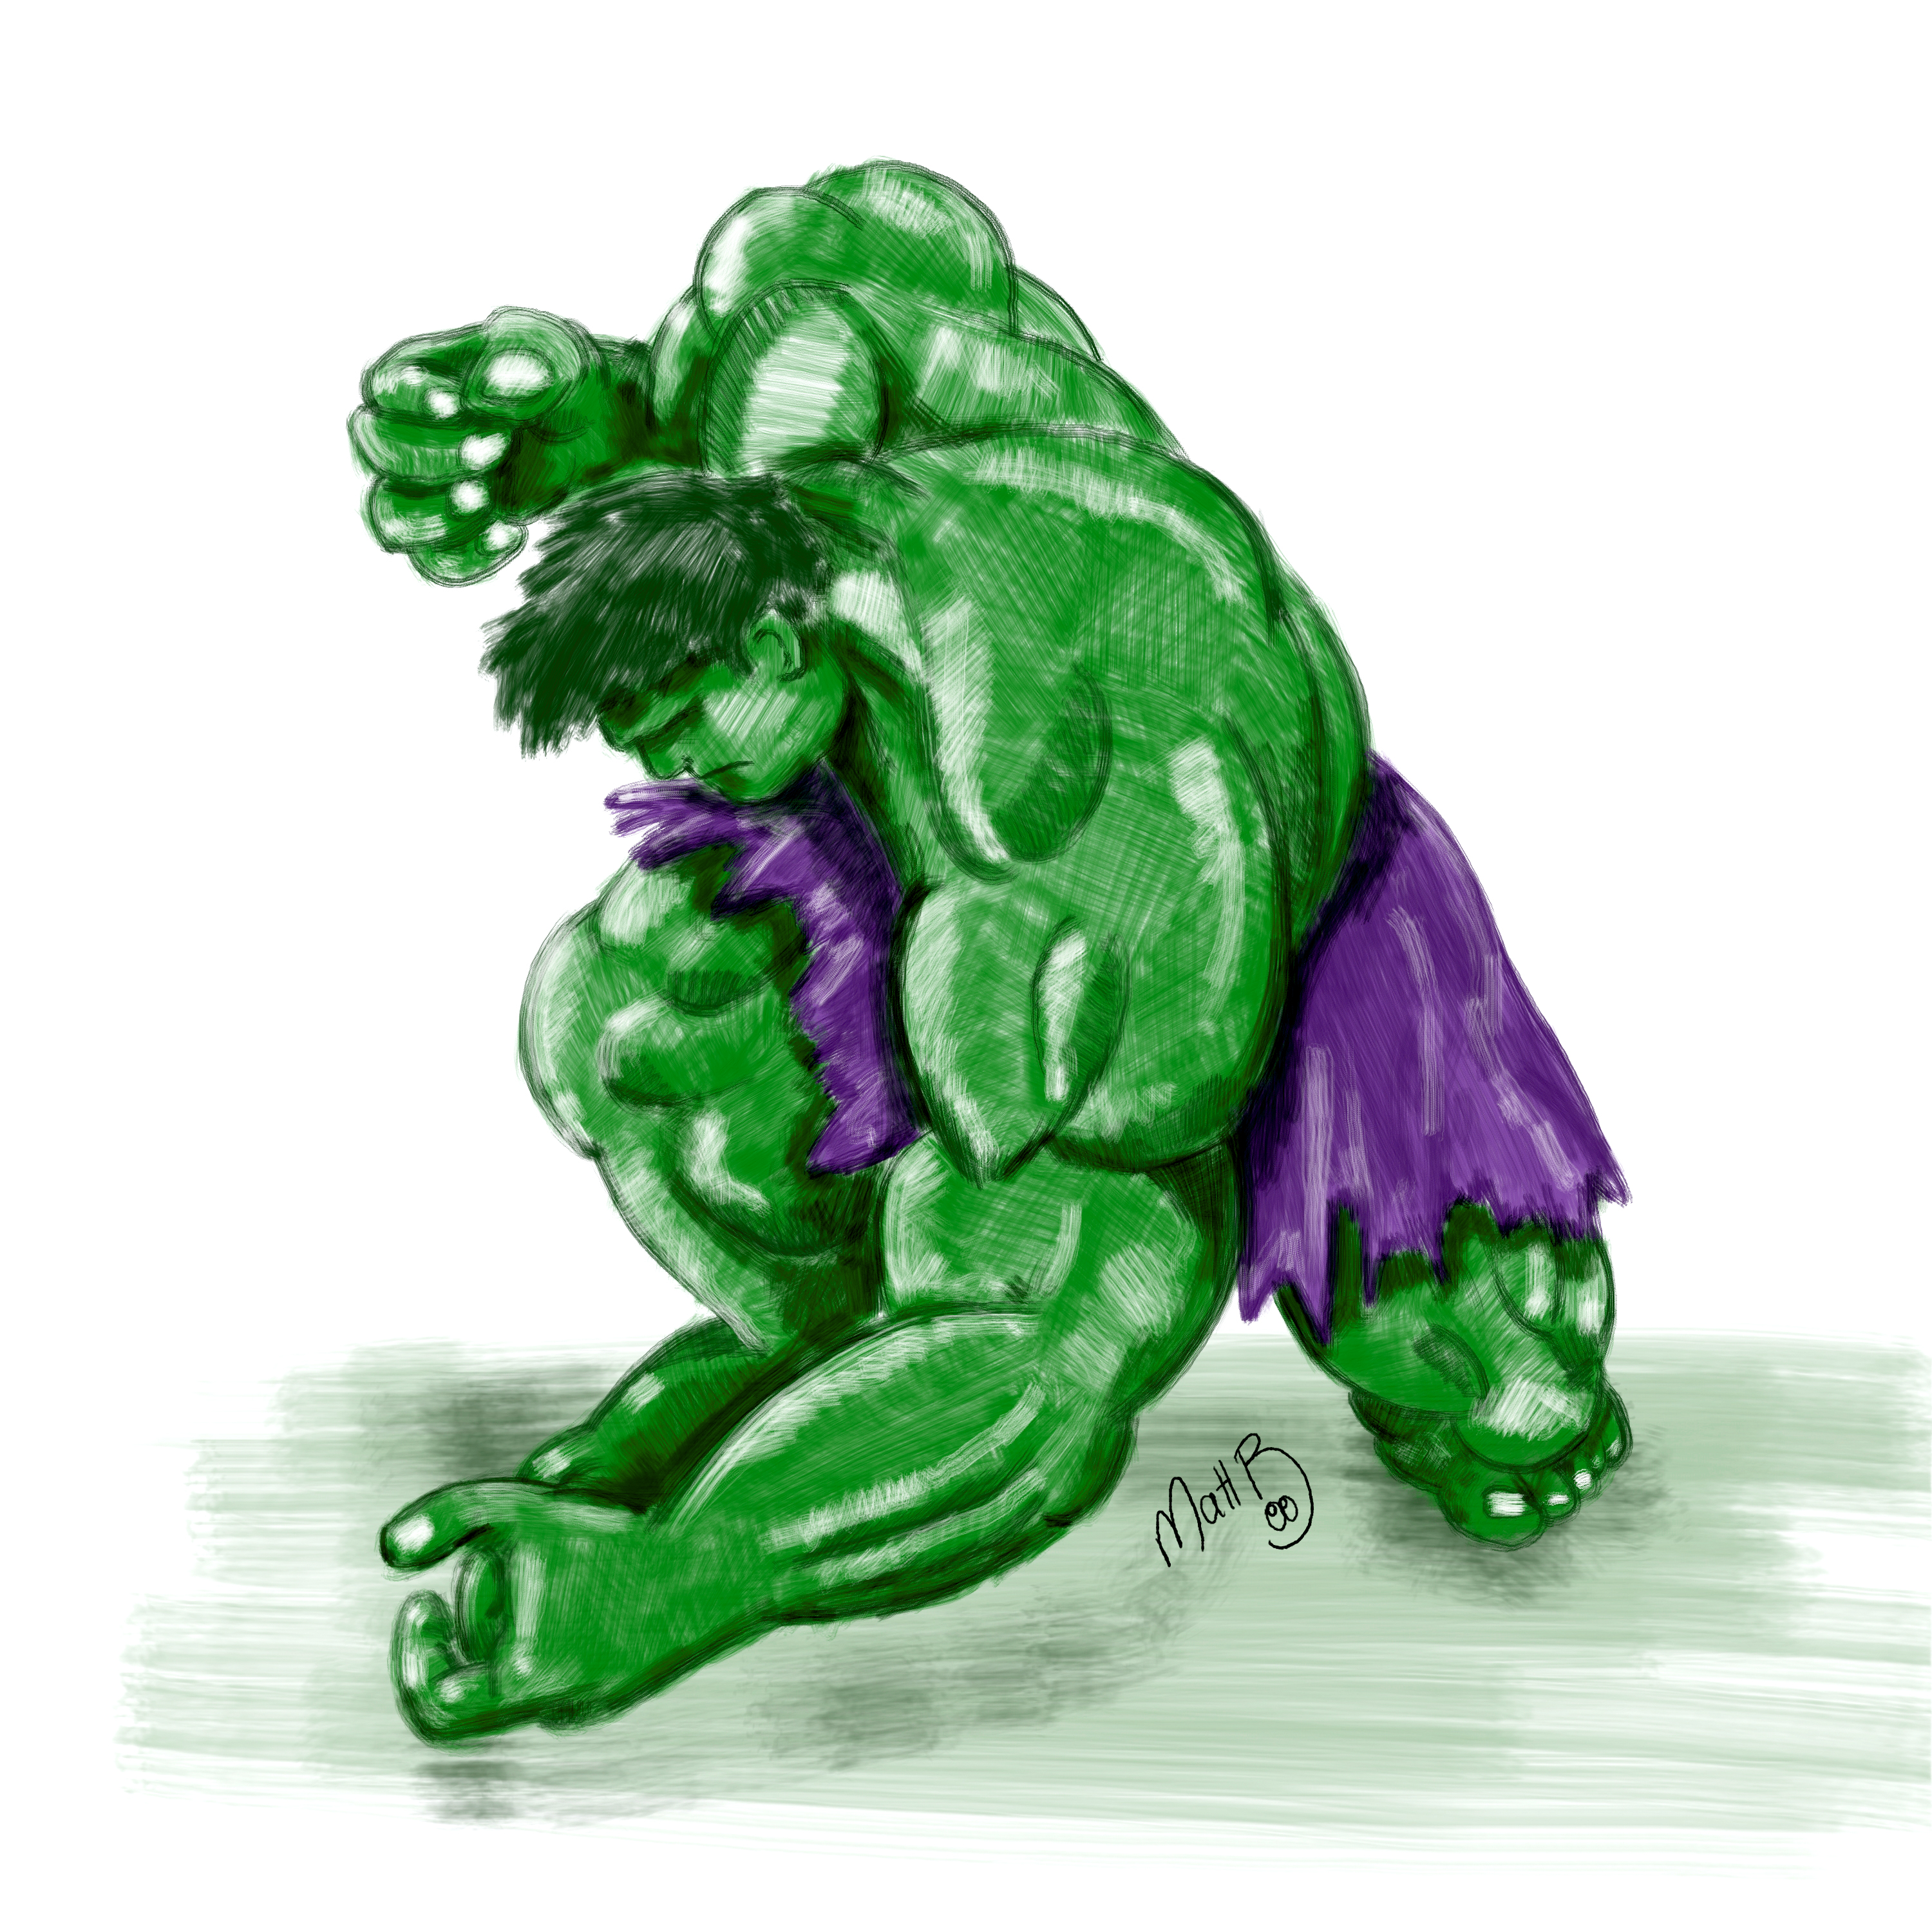 hulk-speed paint